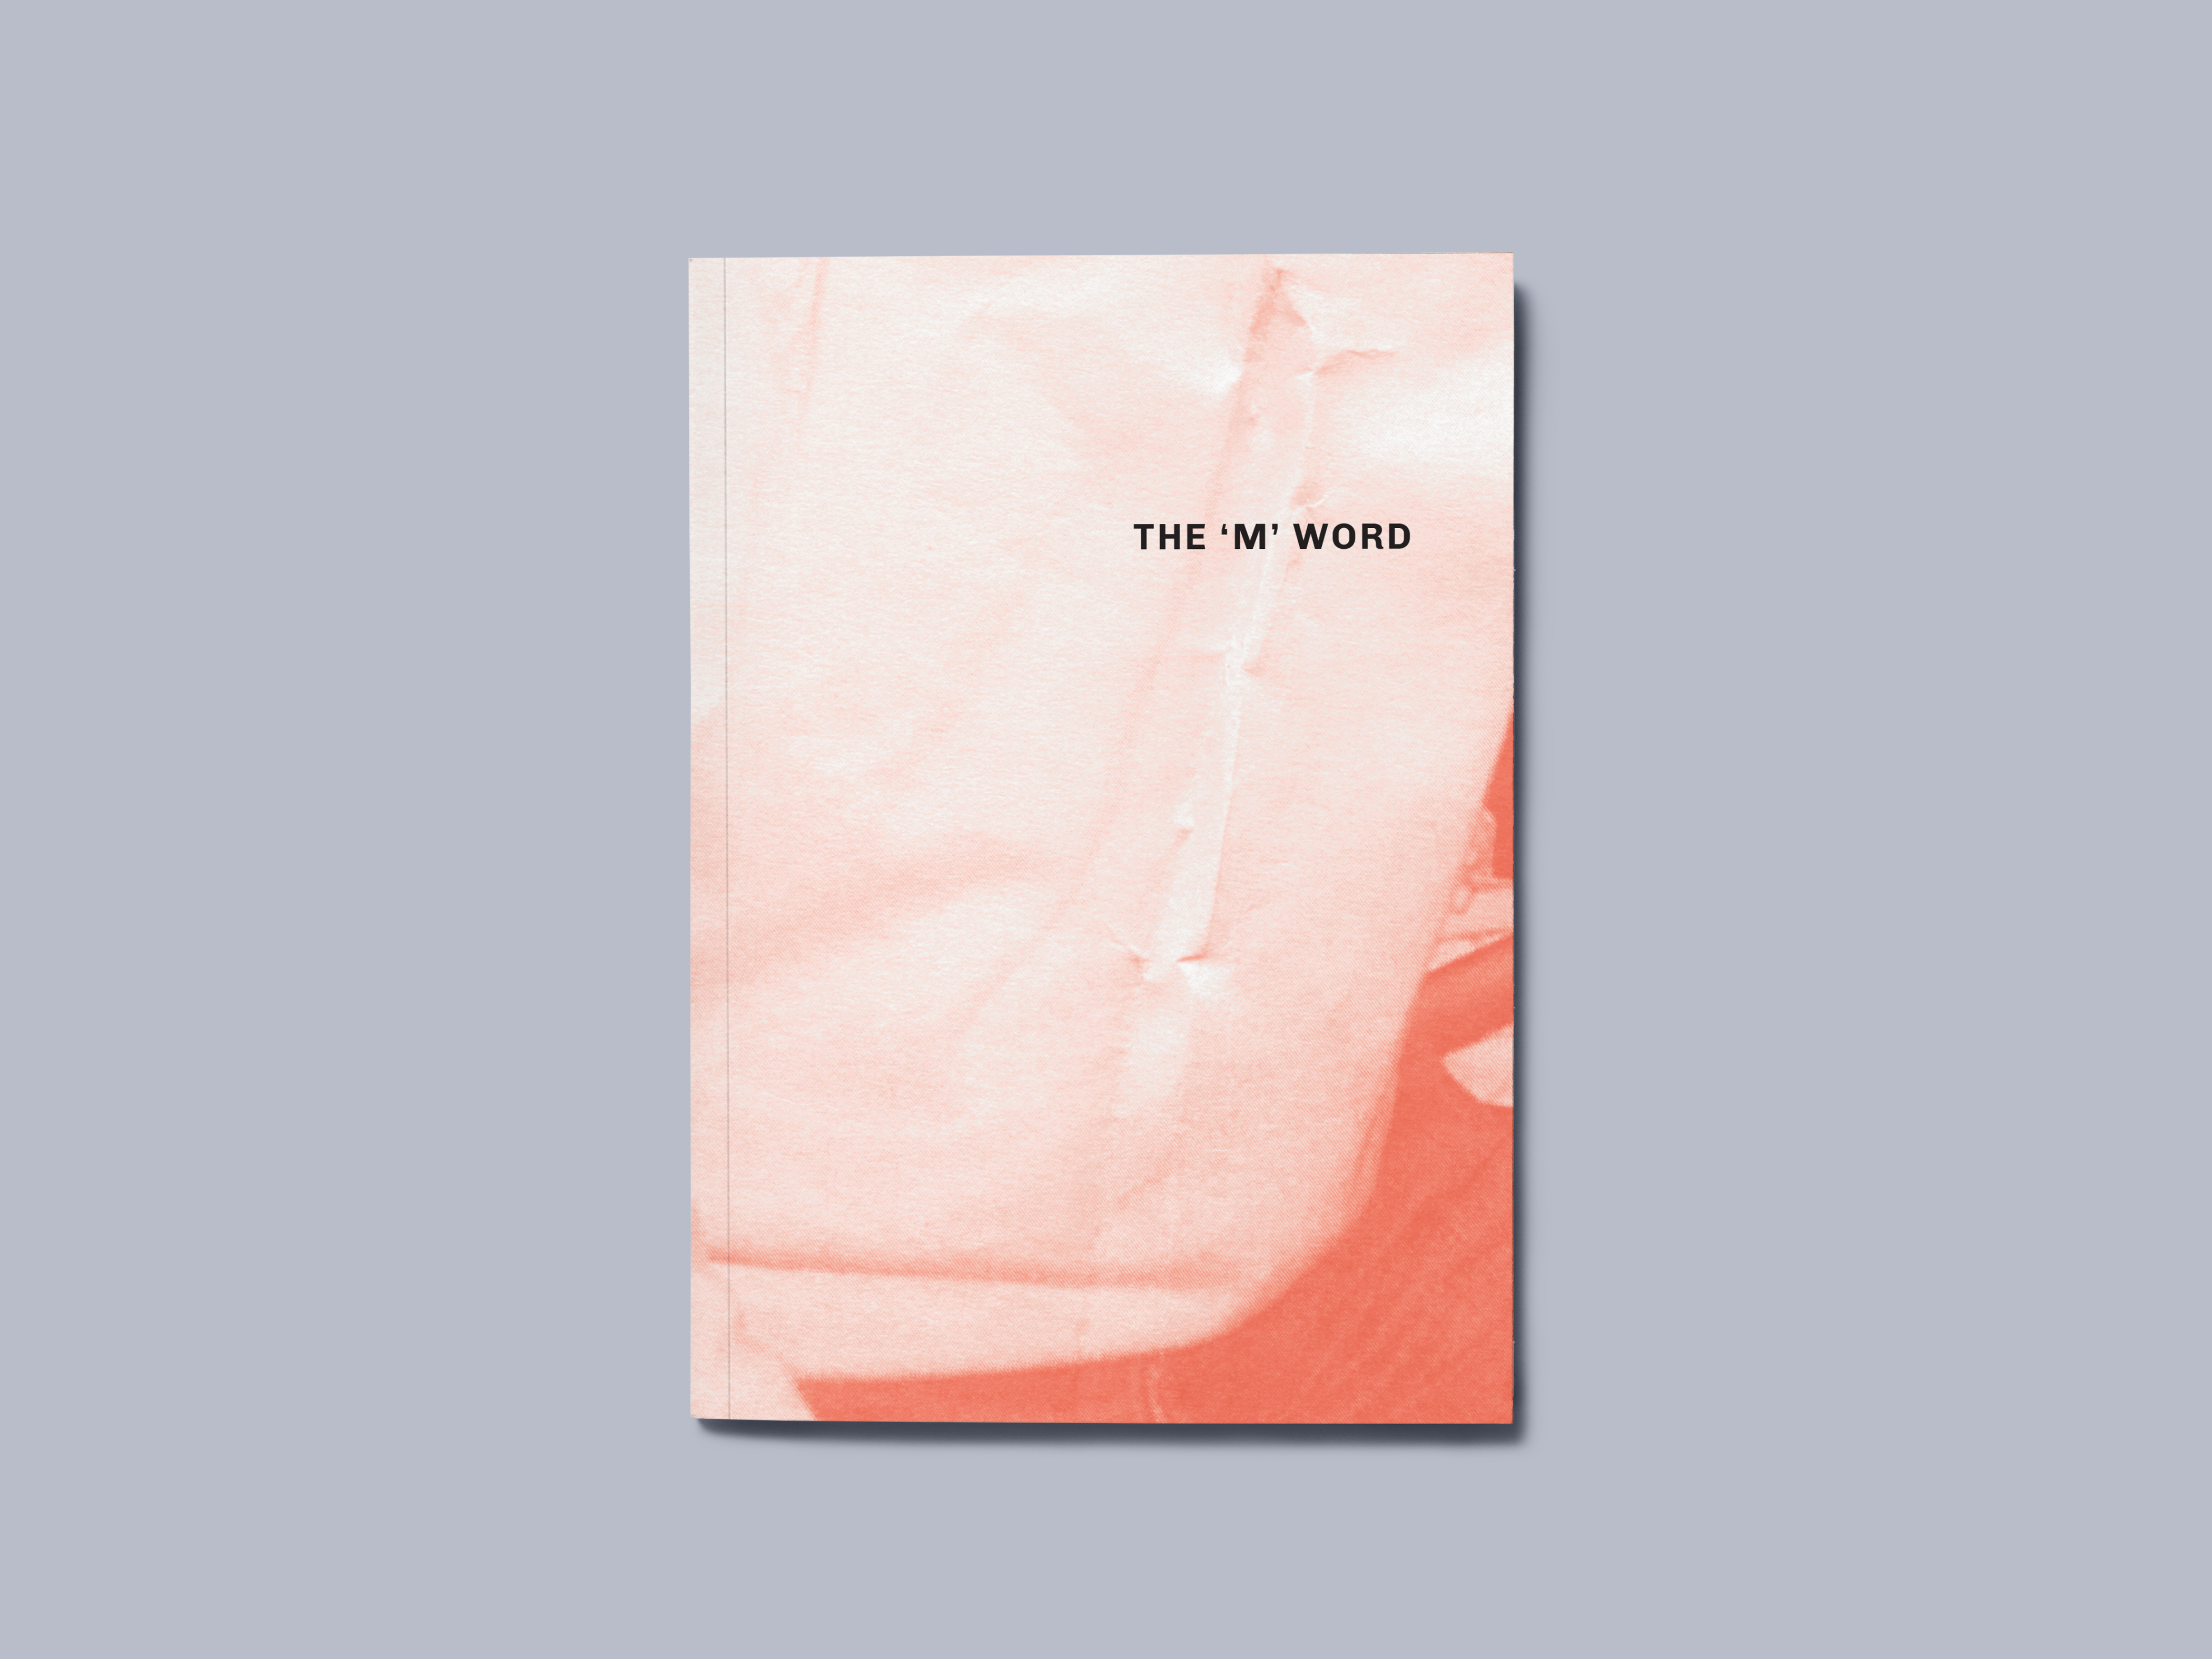 Cover image: The 'M' Word